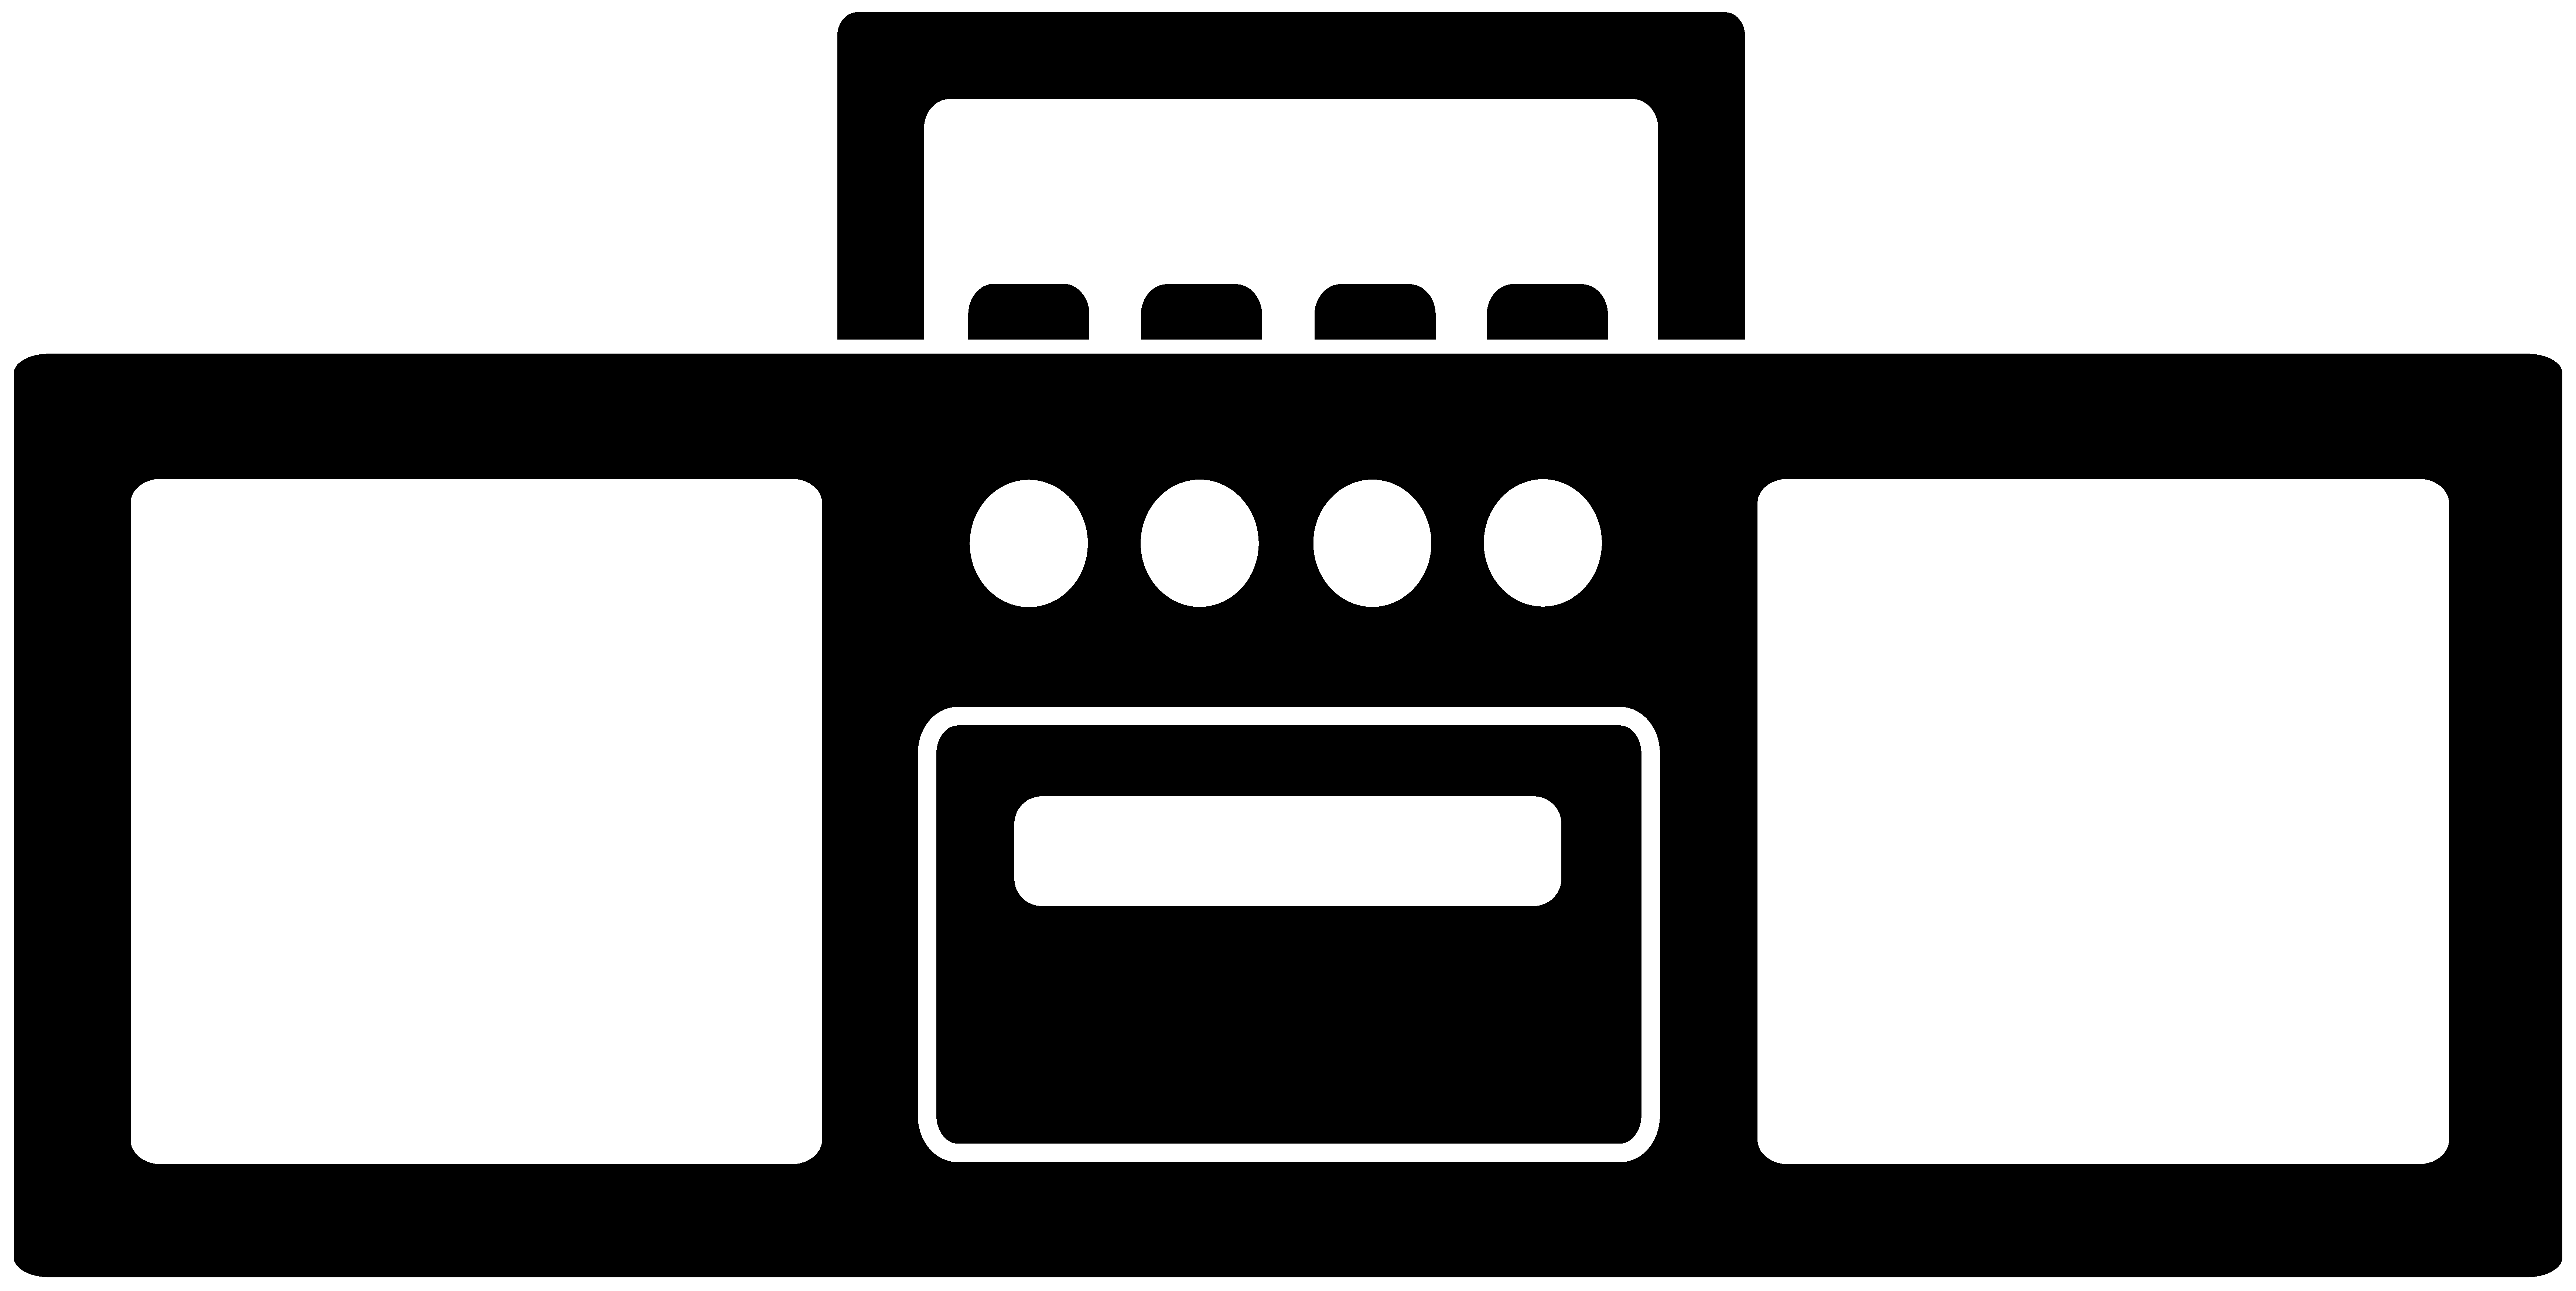 Boombox clipart vector. Black and white